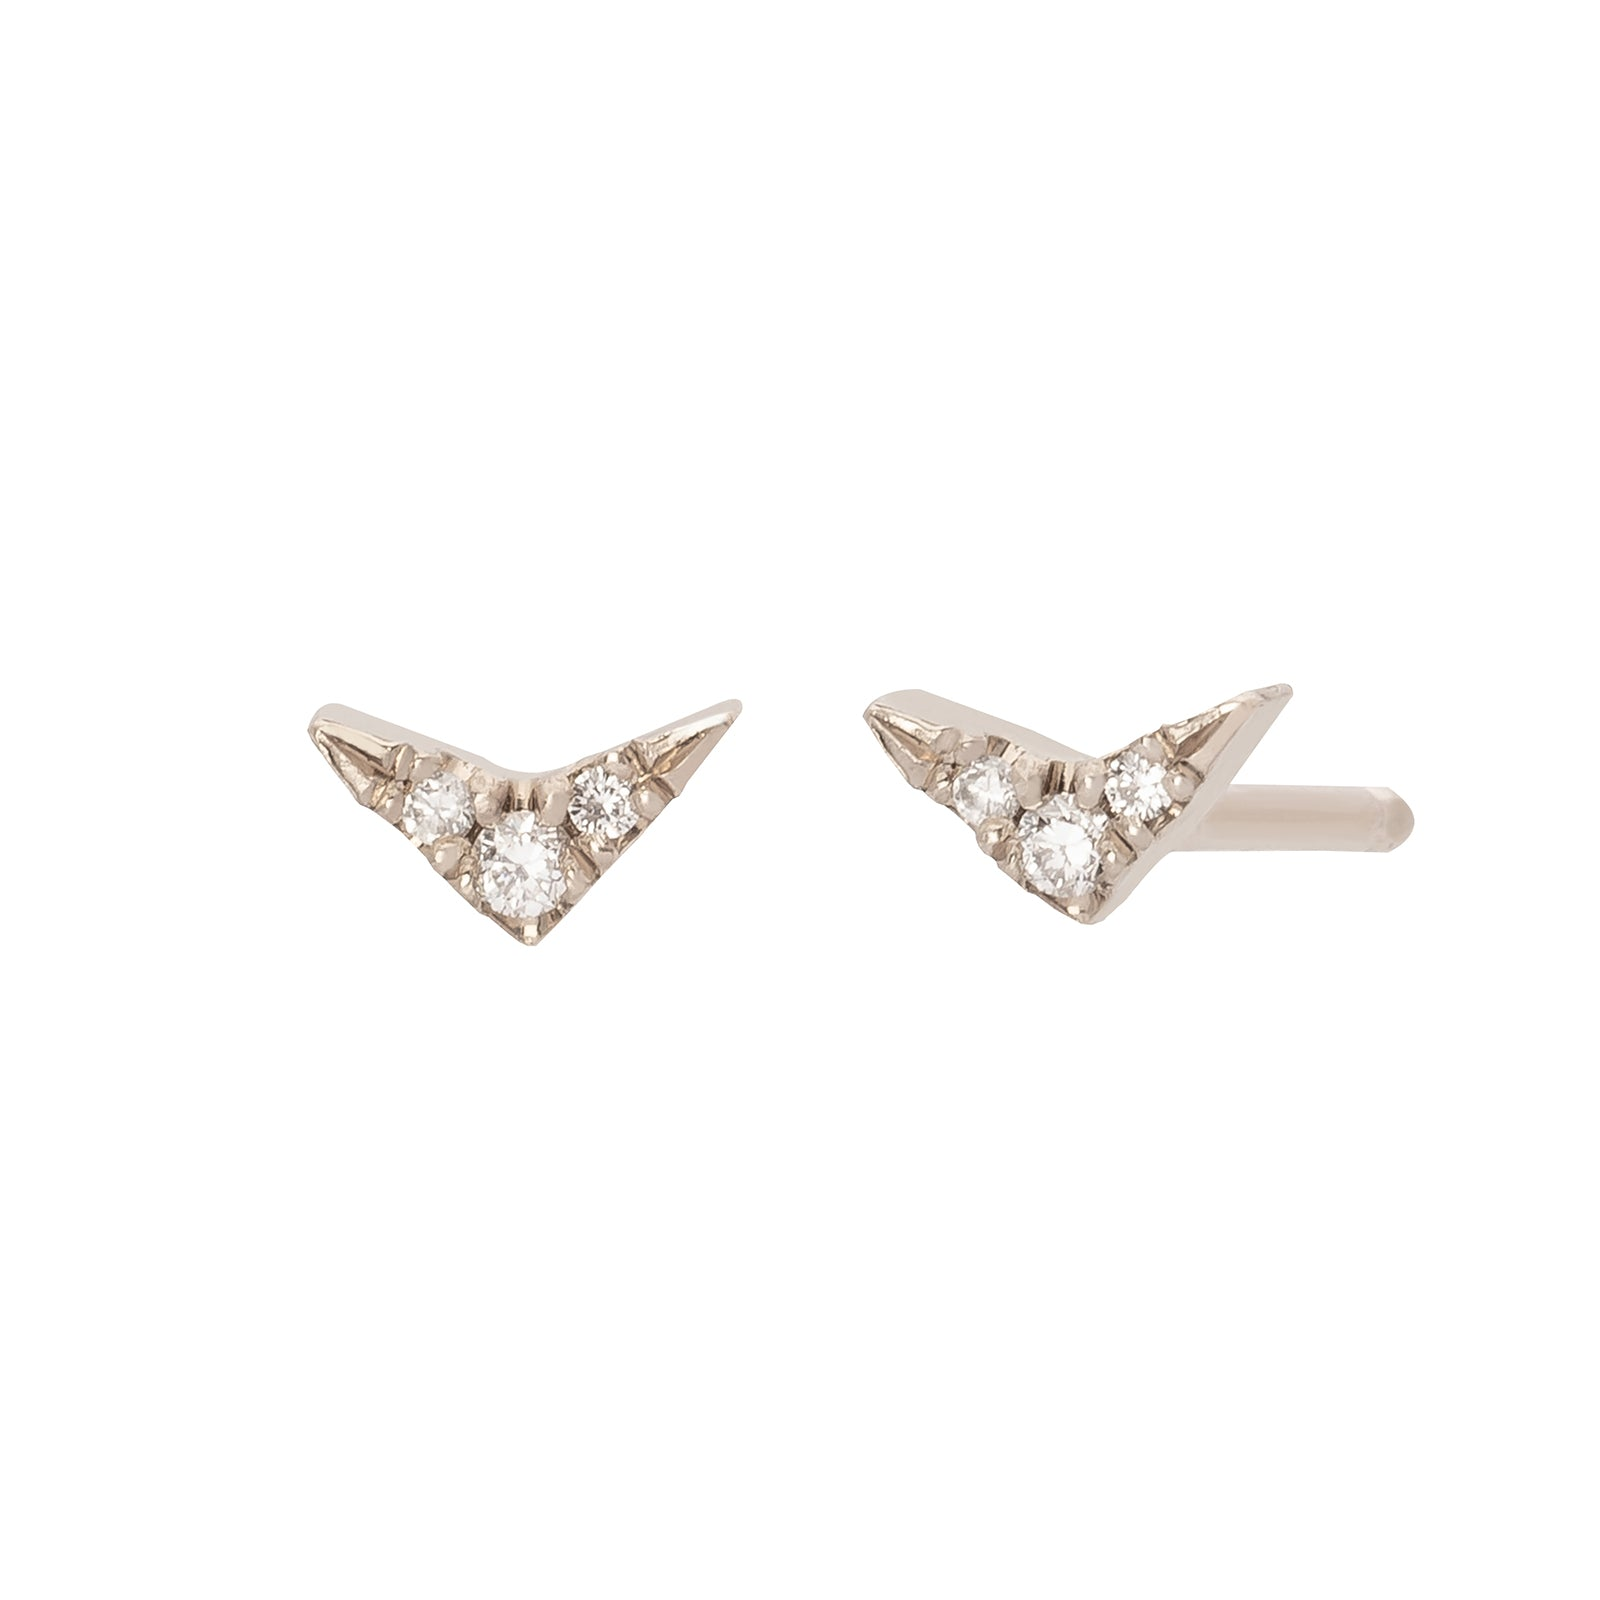 Lizzie Mandler Diamond Pave V Stud - White Gold - Earrings - Broken English Jewelry